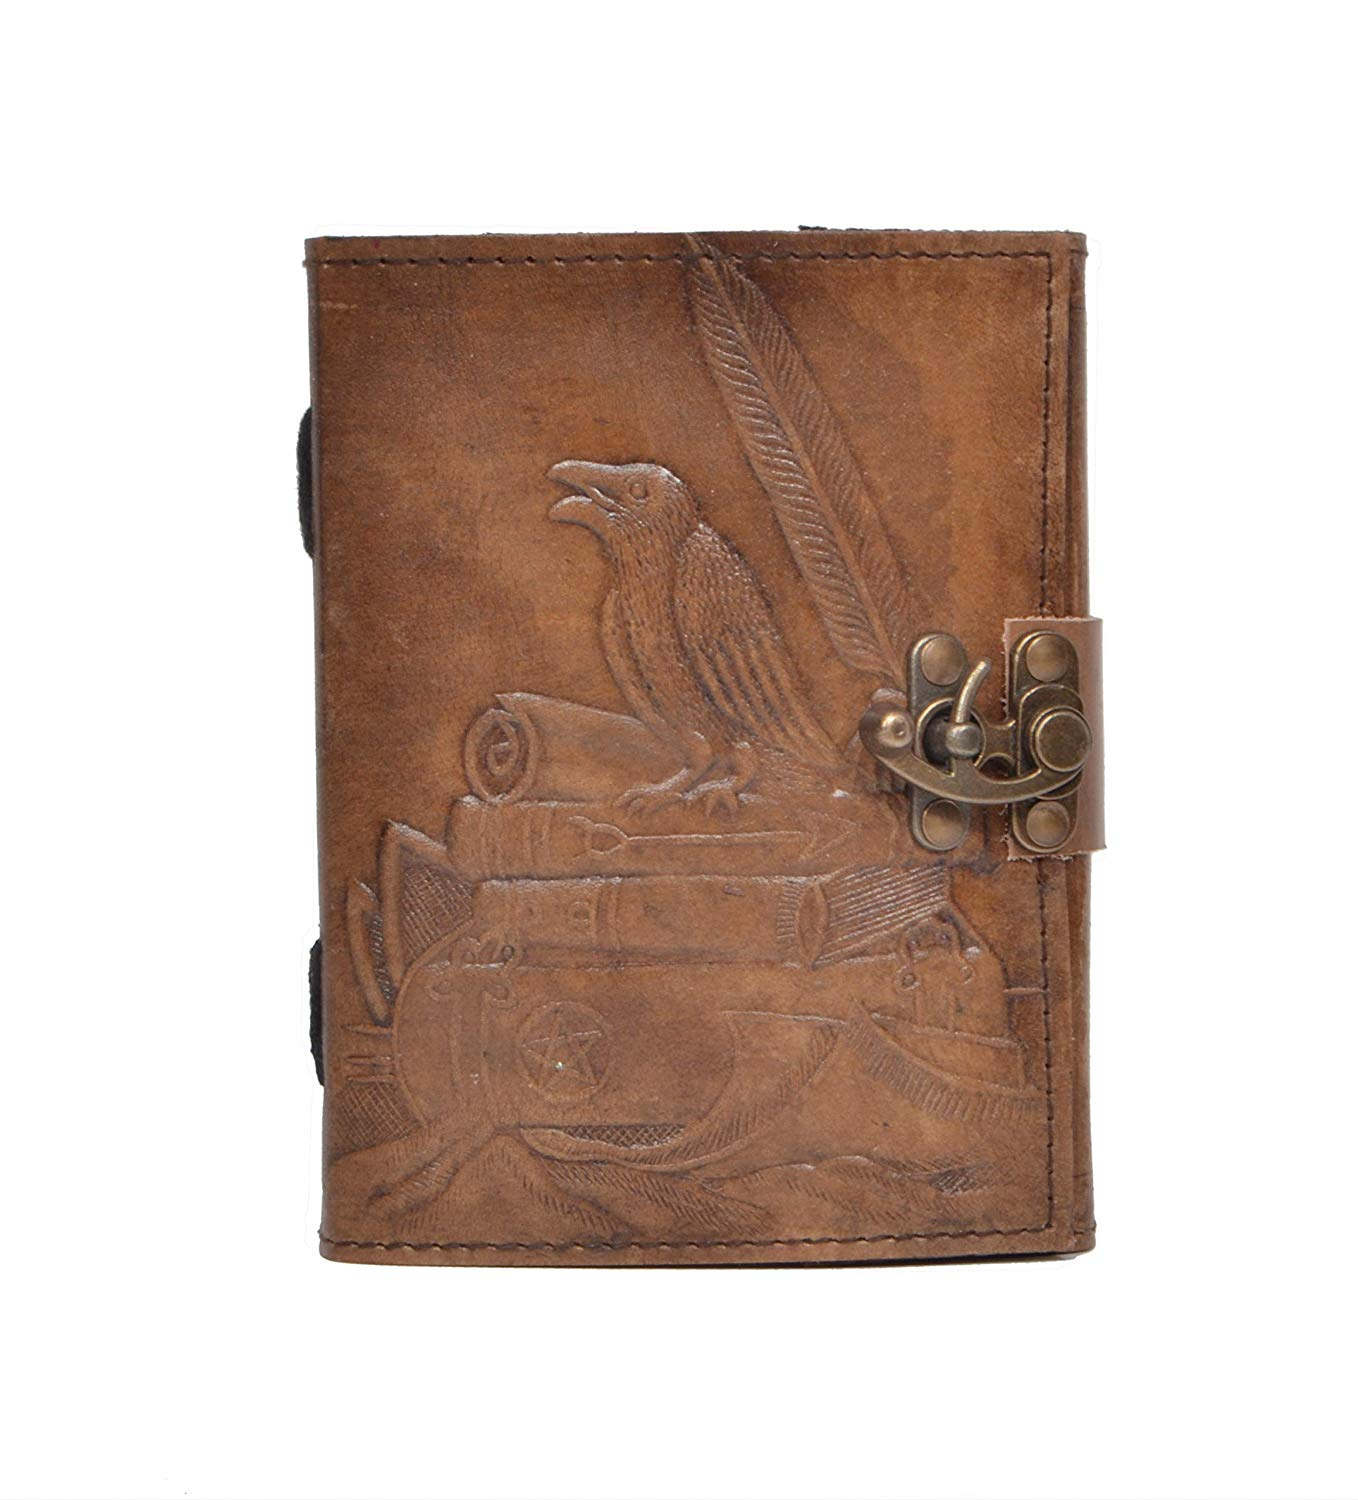 New Vintage Handmade Crow Embossed Leaher Diary Raven Paper Brown Charcoal Color Luxury Paper Hand with Books Leather Journal Sketchbook Notebook Art Book Poetry Book Diary